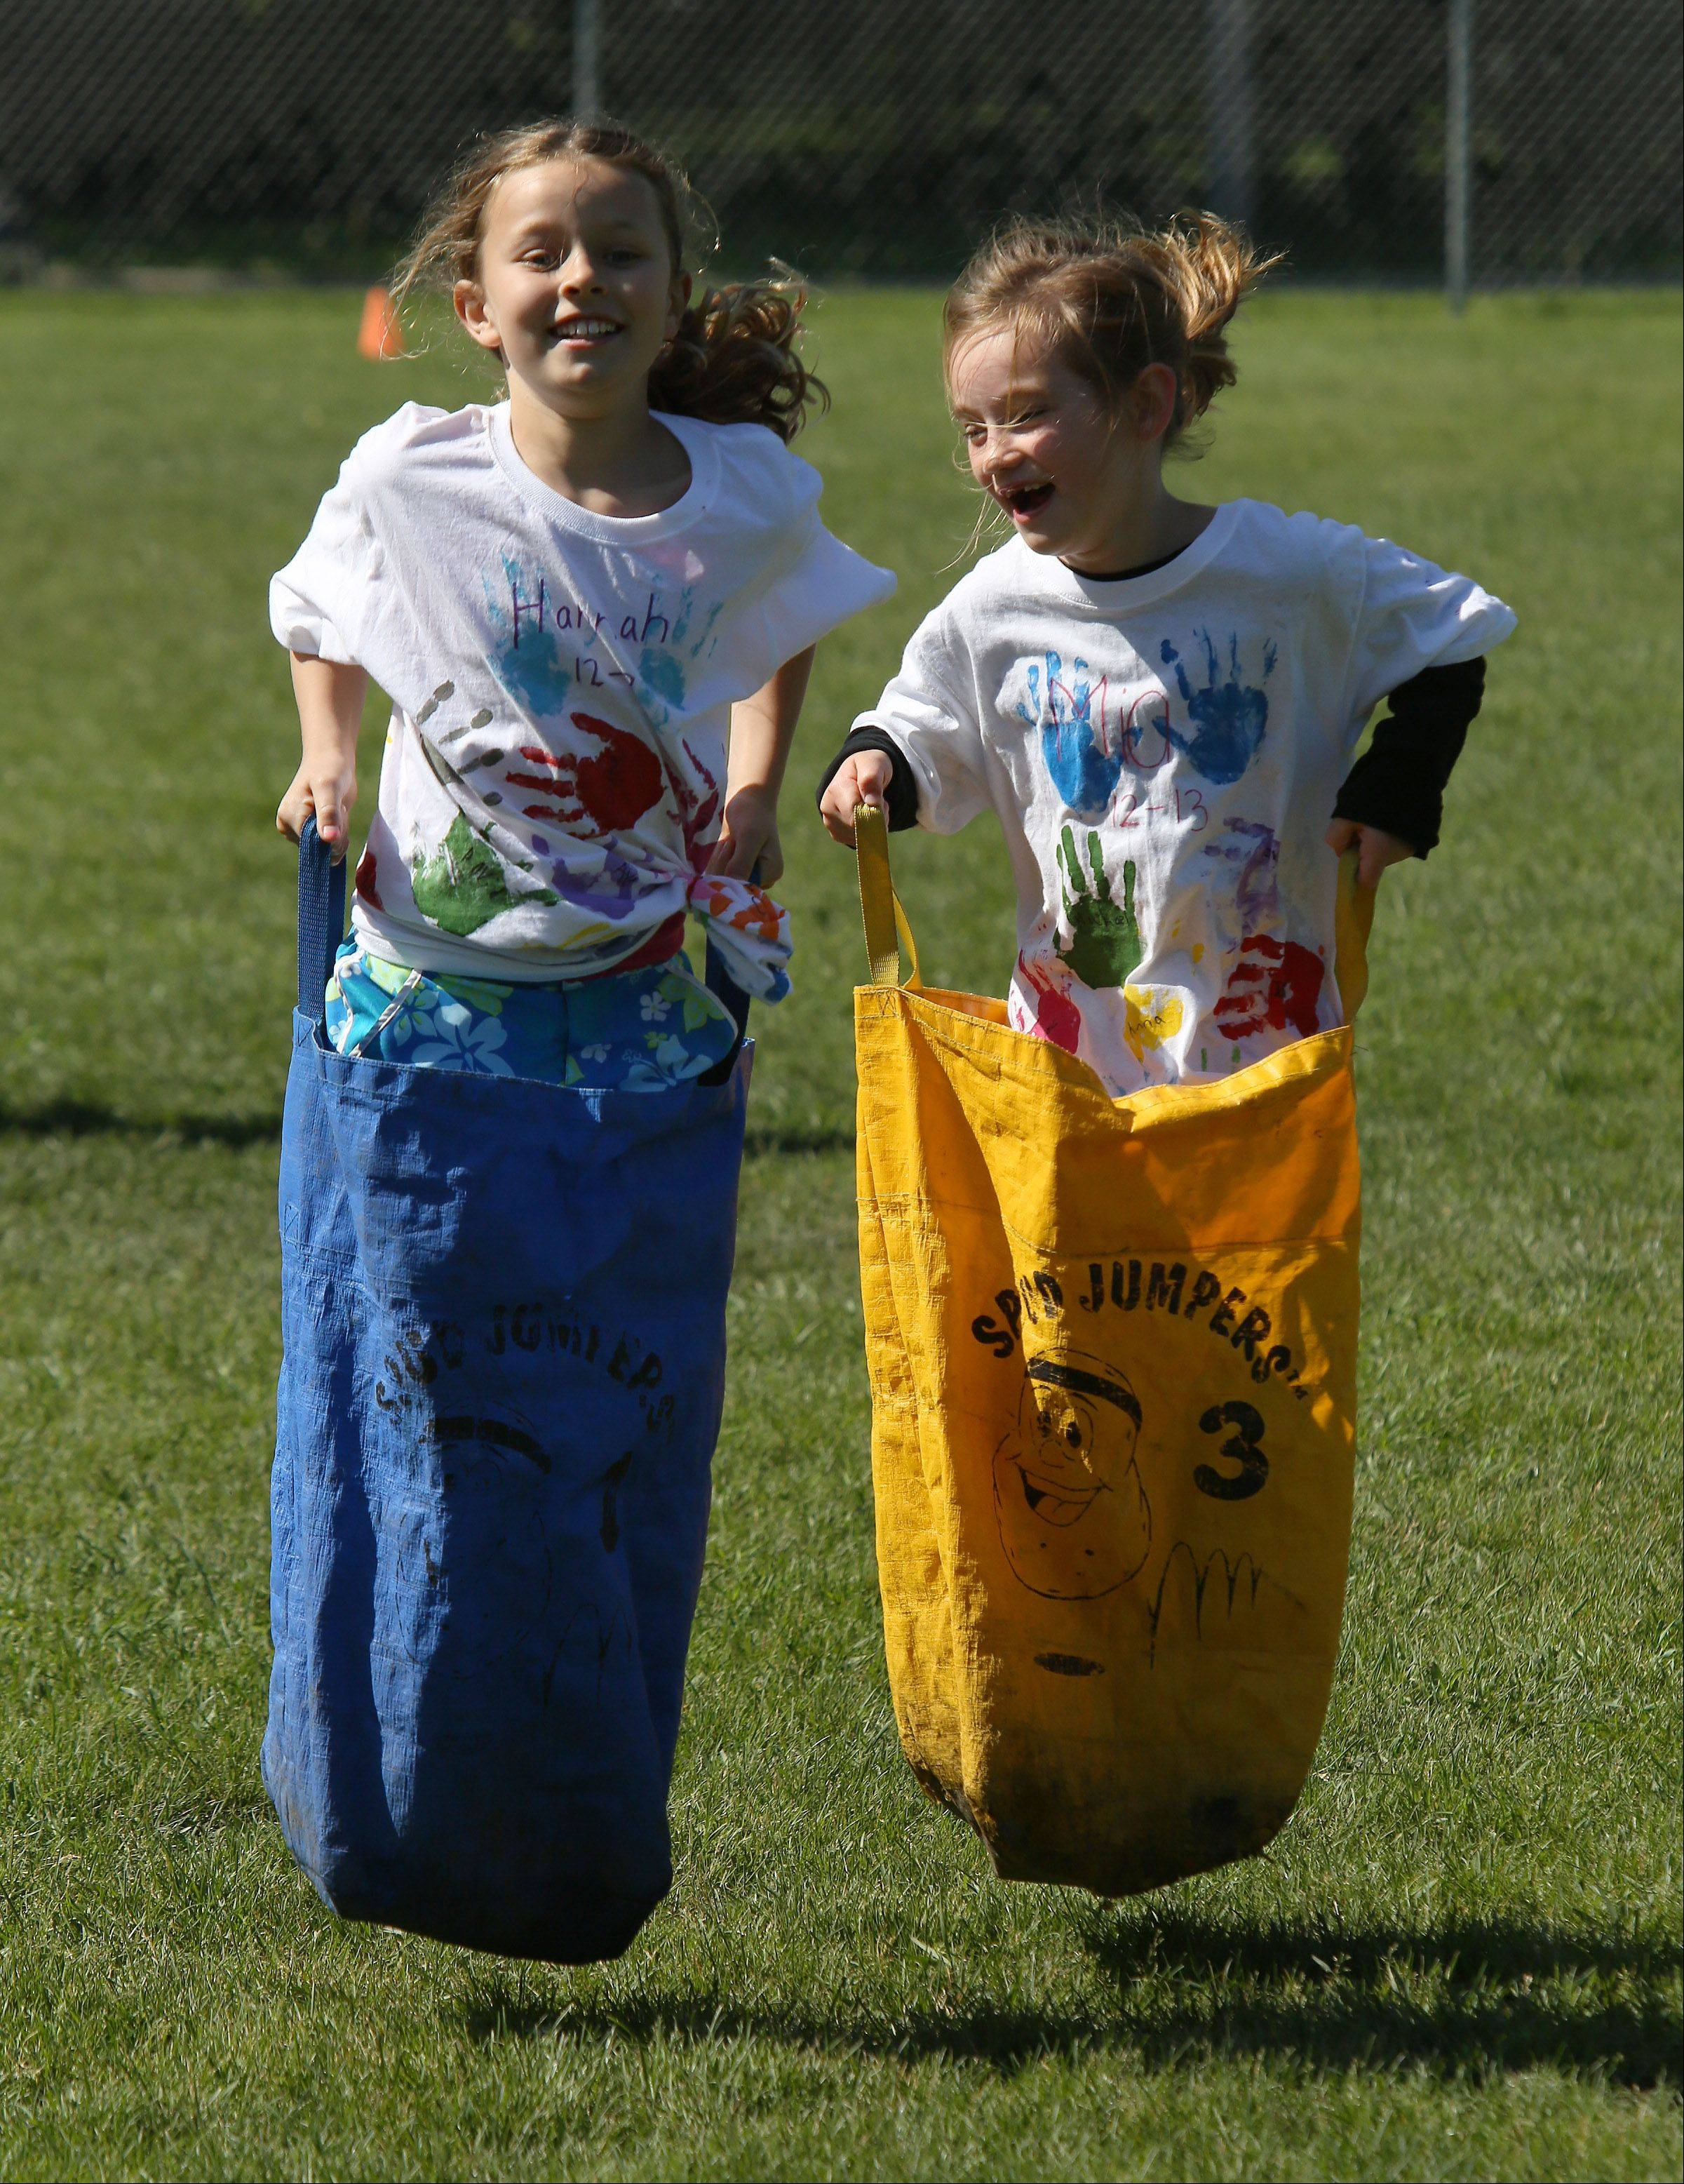 First graders Hannah Fleming, left, and Mia Colton, compete in the sack race during Field Day Monday at Rockland School in Libertyville. Students spent a beautiful spring day competing in field events and playing games.